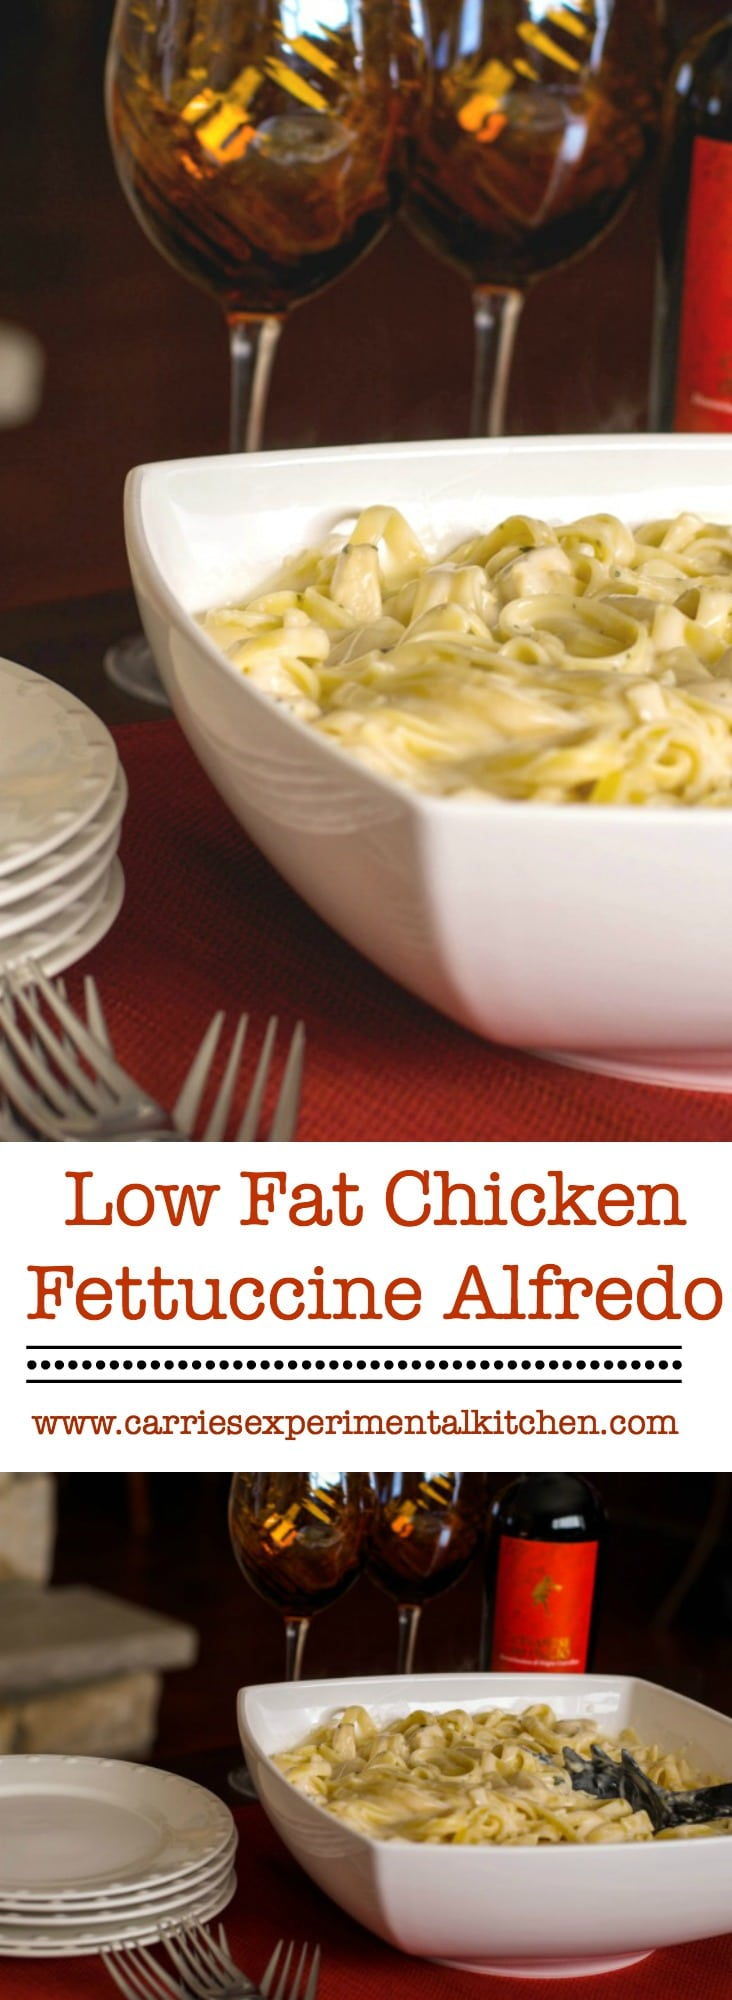 Try making one of your favorite meals a little healthier, without losing the flavor with this Low Fat Chicken Fettuccine Alfredo.